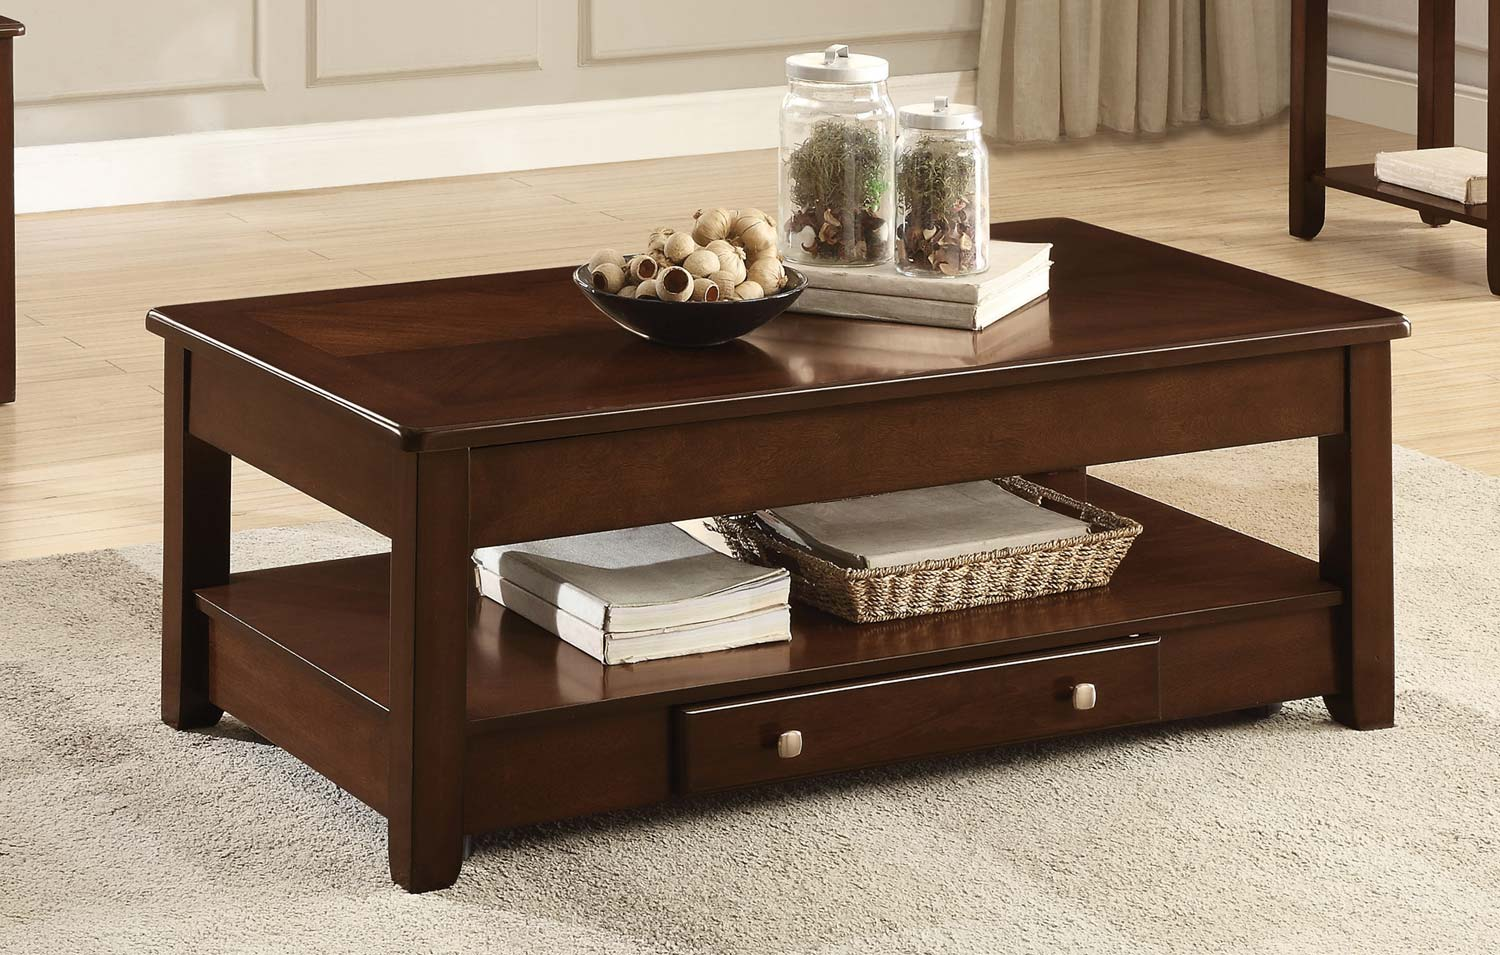 Homelegance Ballwin Cocktail Table with Lift Top and Functional Drawer on Casters - Deep Cherry